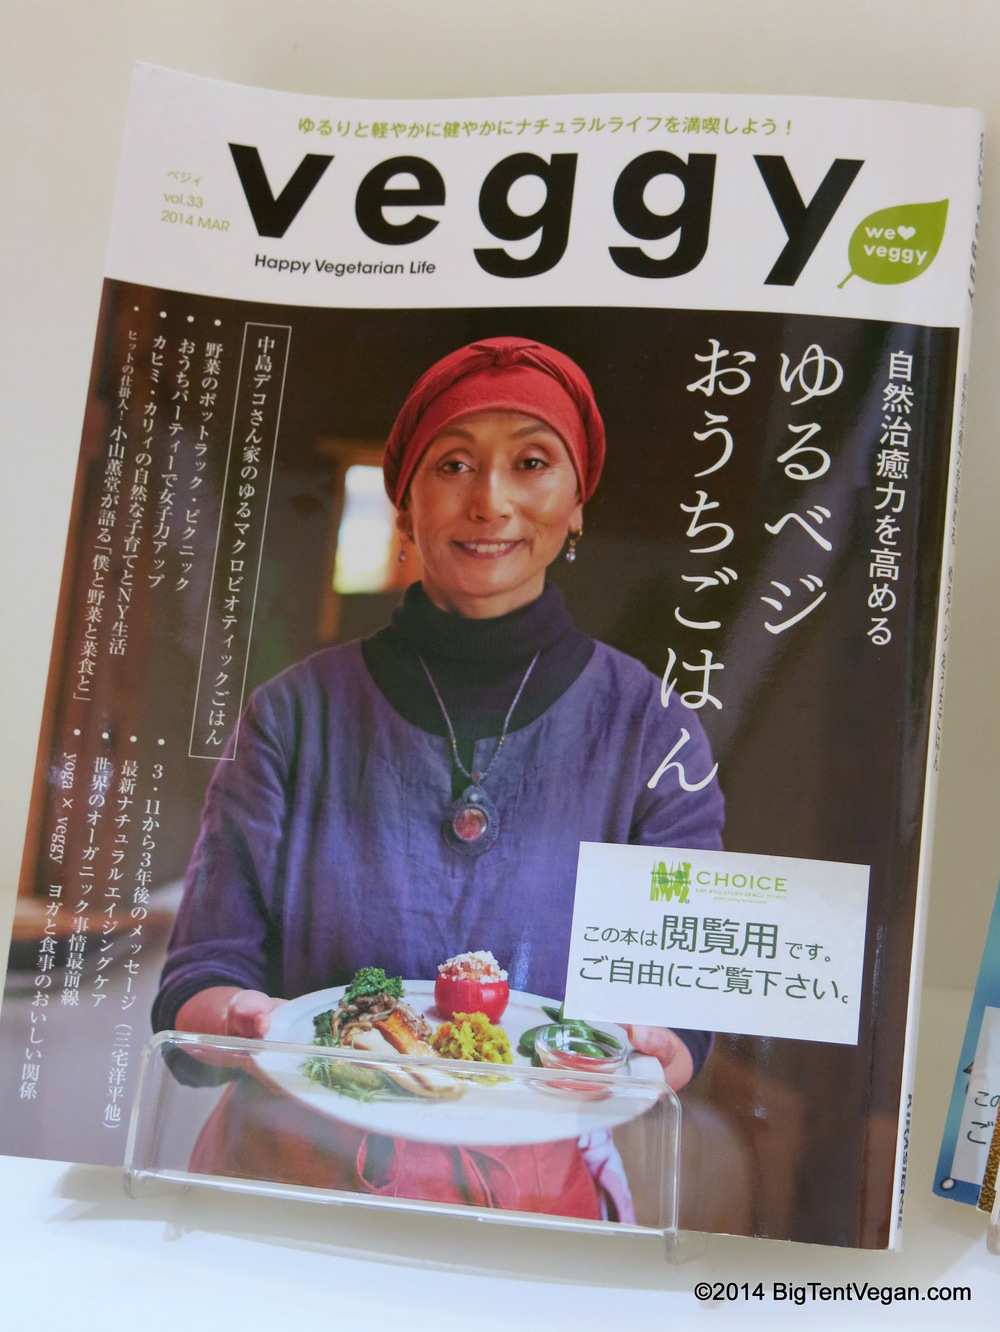 Japanese Vegetarian magazine  Veggy: Happy Vegetarian Life